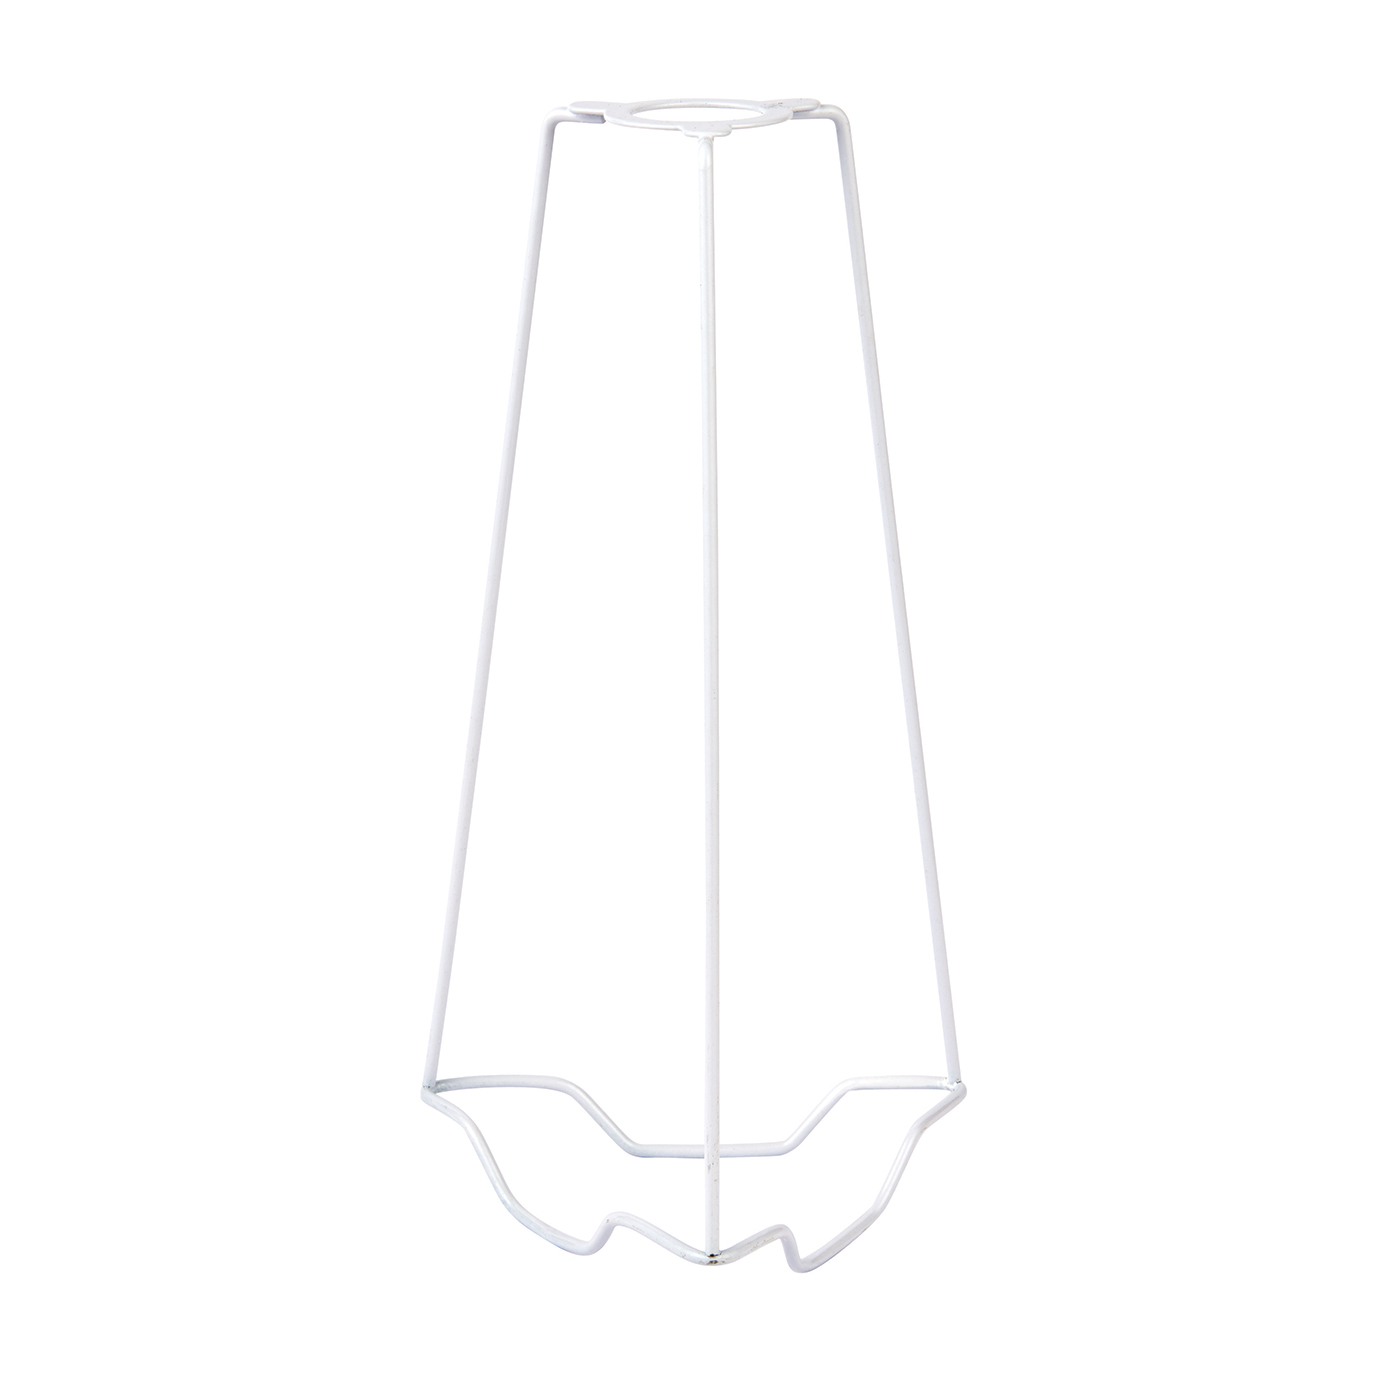 Endon SC-9 lampshade carrier 9 inch Gloss white 250mm height x 125mm diameter Thumbnail 1